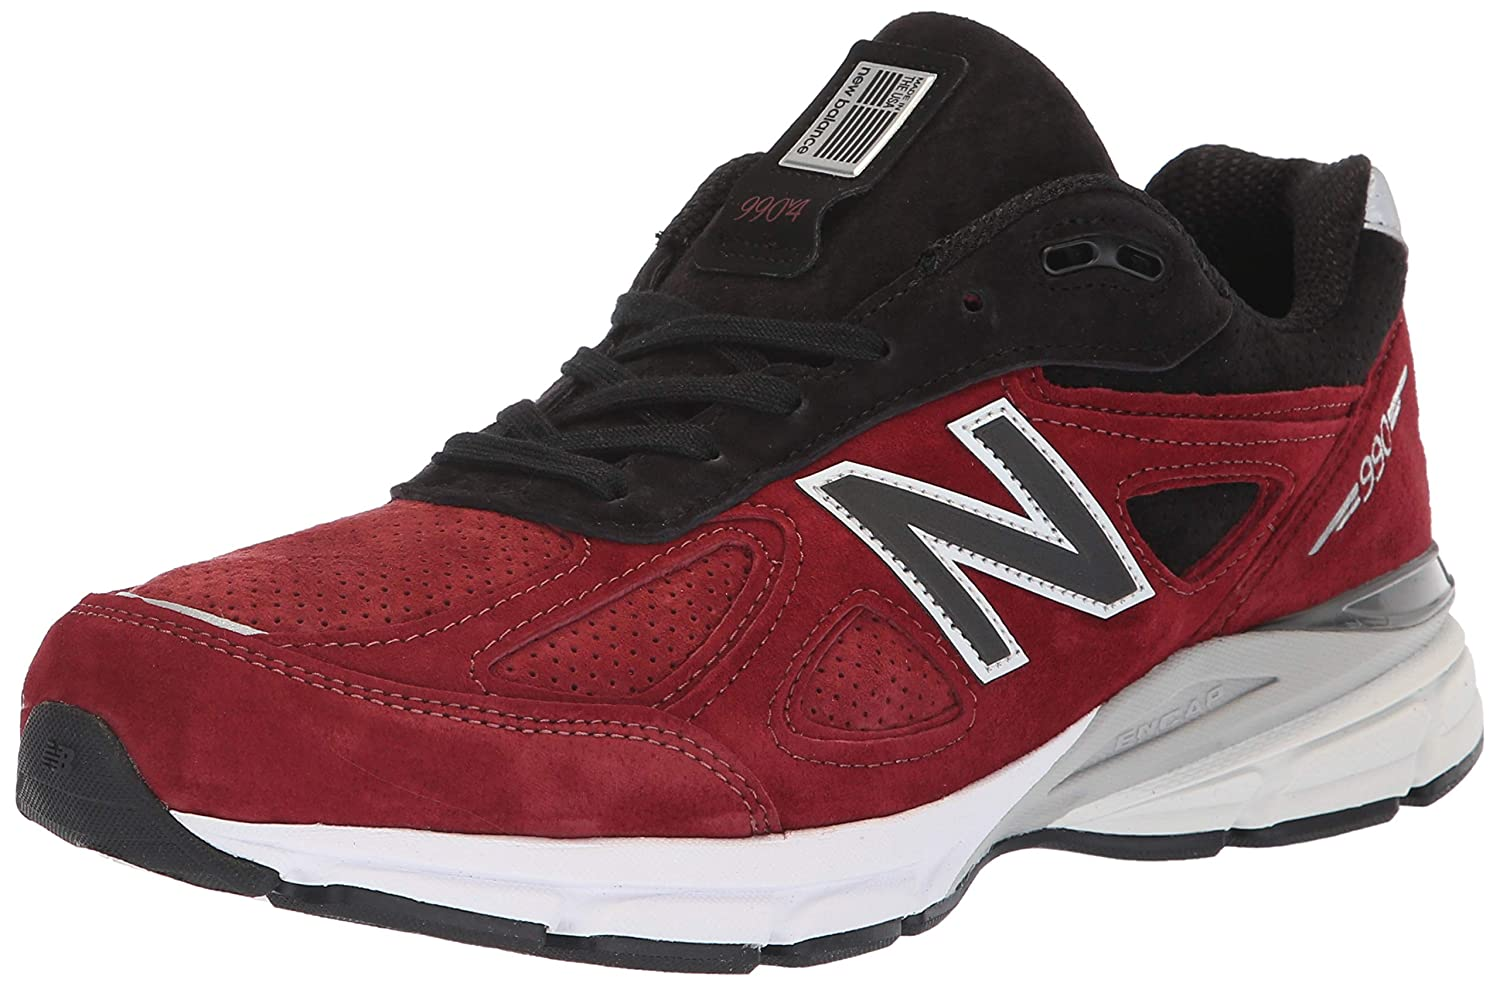 size 40 180fa f0417 New Balance Men's 990v4, Red, 9.5 D US